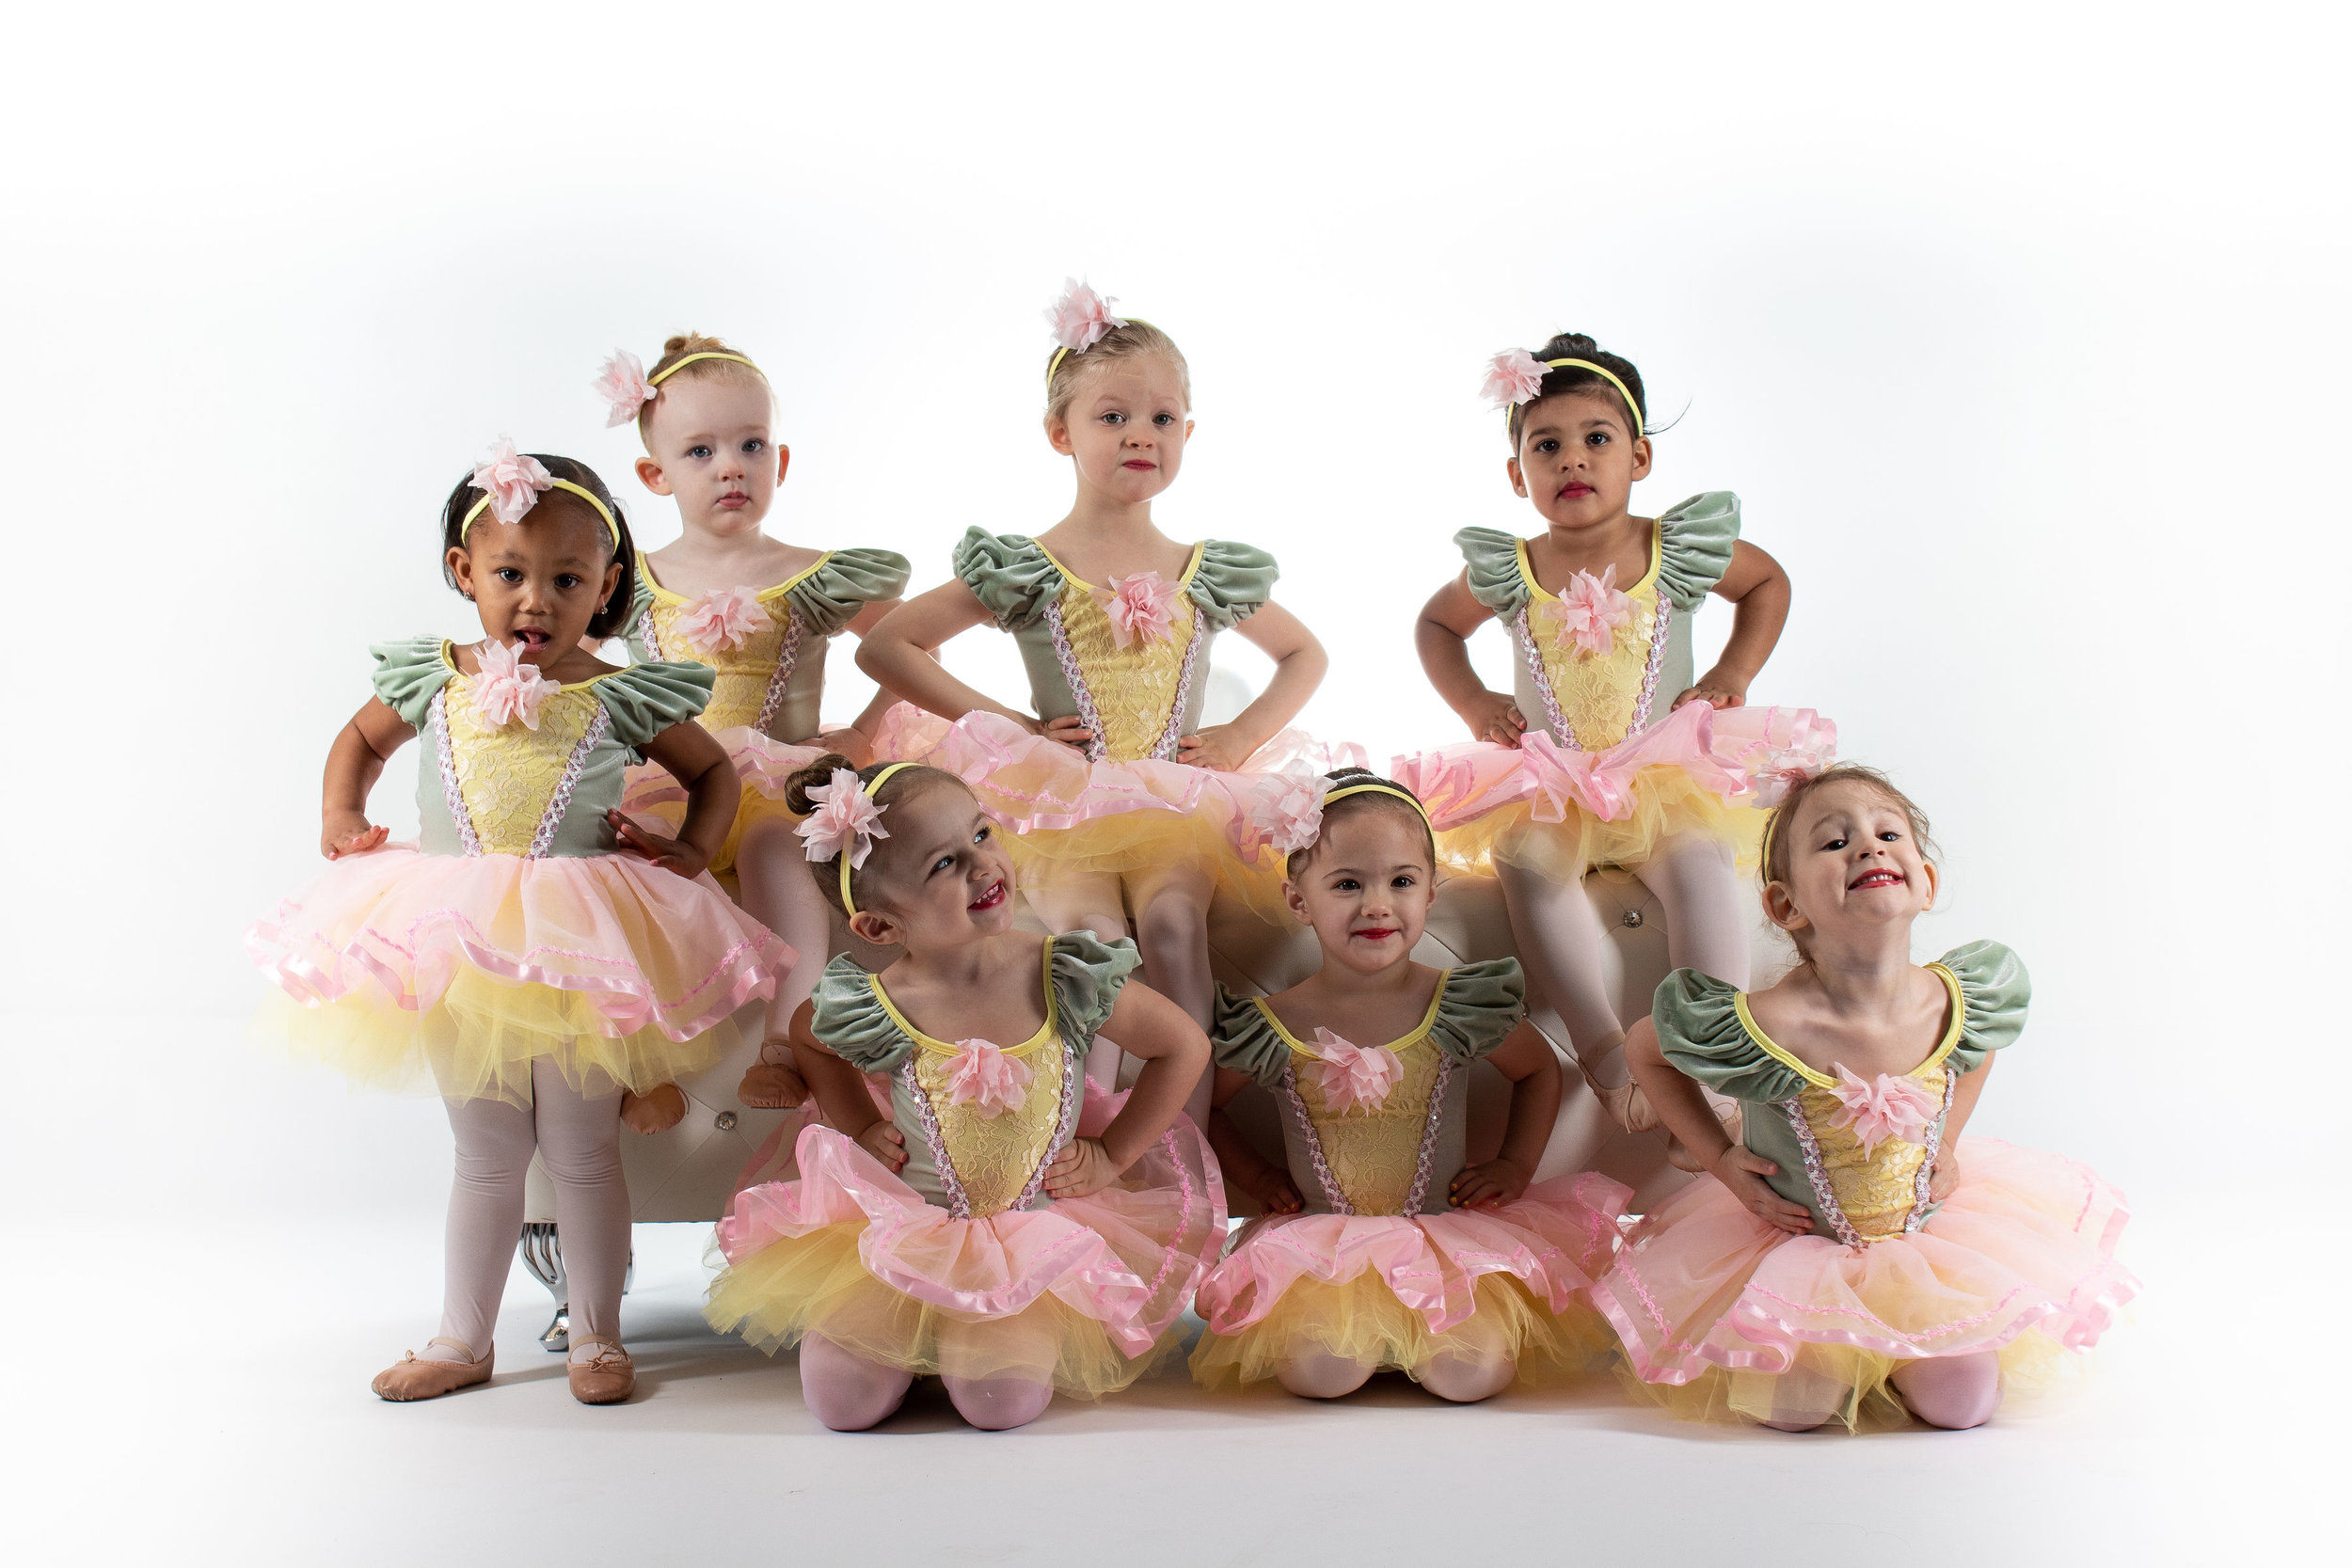 Spring Recital - The spring recital is open to all classes. Students also have the chance to audition for special leading roles.2020 Recital InformationSpring RecitalSaturday, May 30th 20202pm & 6pmDress Rehearsal - Friday, May 29th 6pmAbbey Theater5600 Post RdDublin, OH 43017